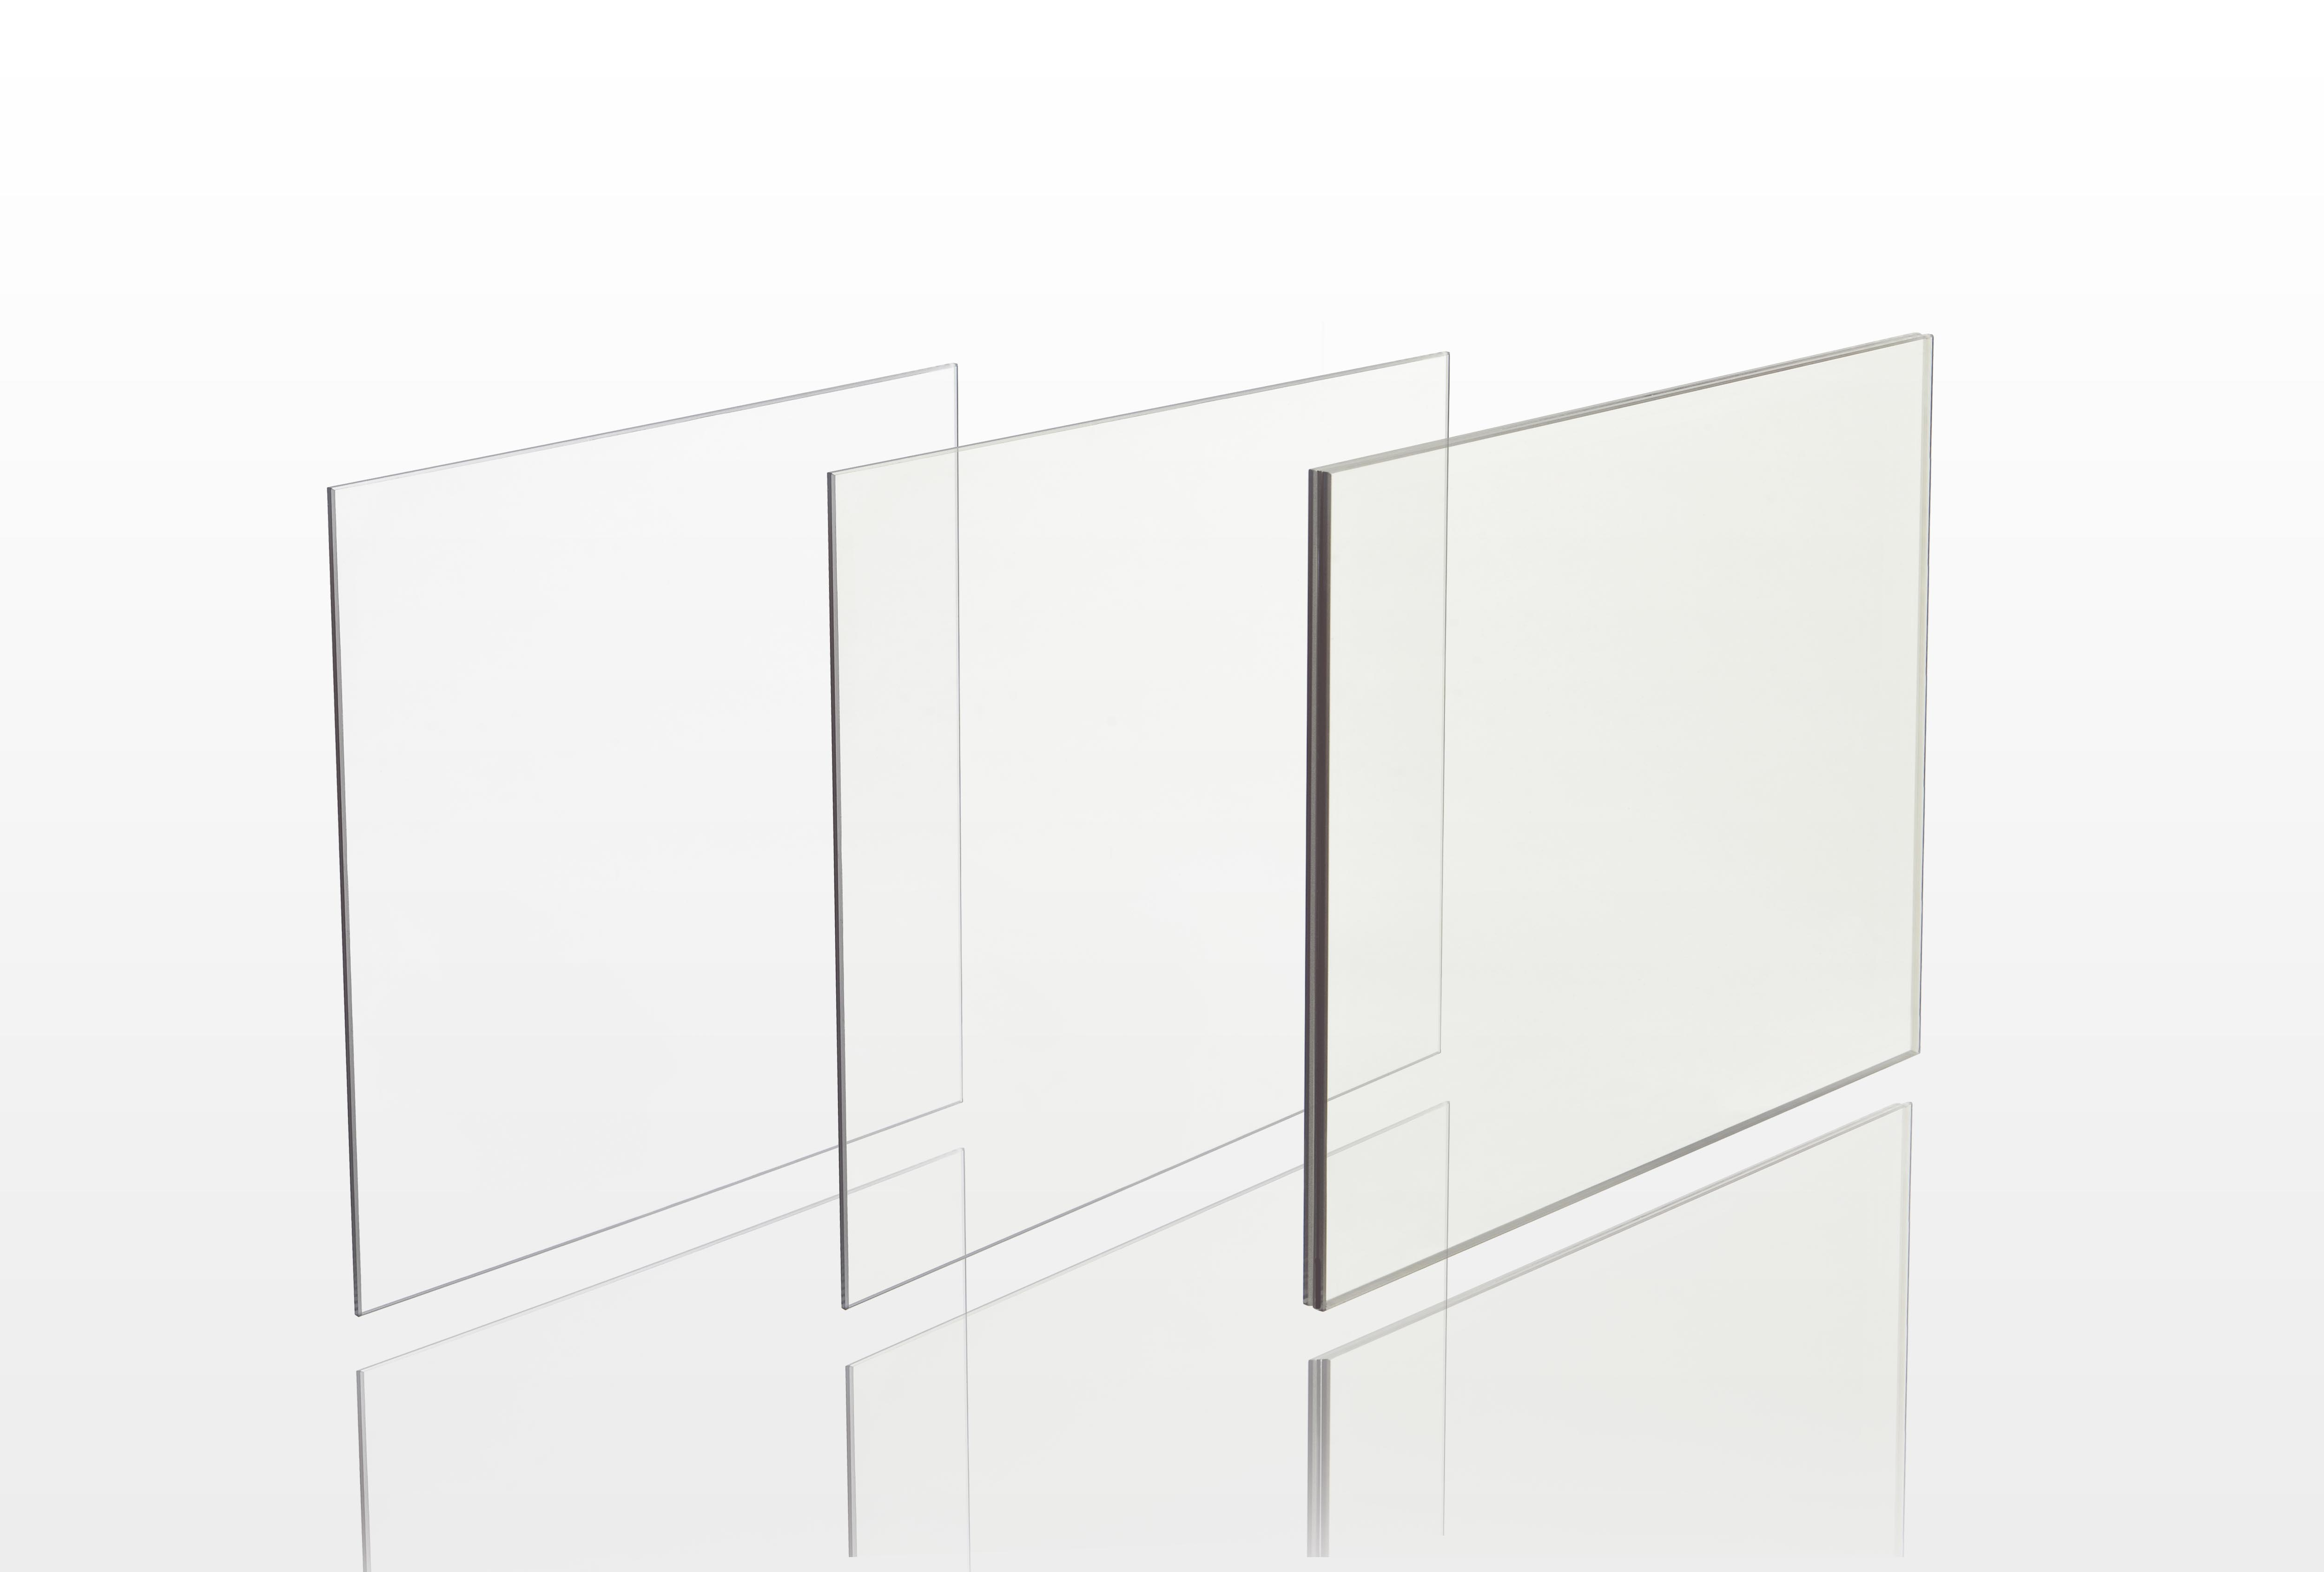 Fire-rated glass Schott PYRAN Platinum is available in monolithic, filmed and laminated versions